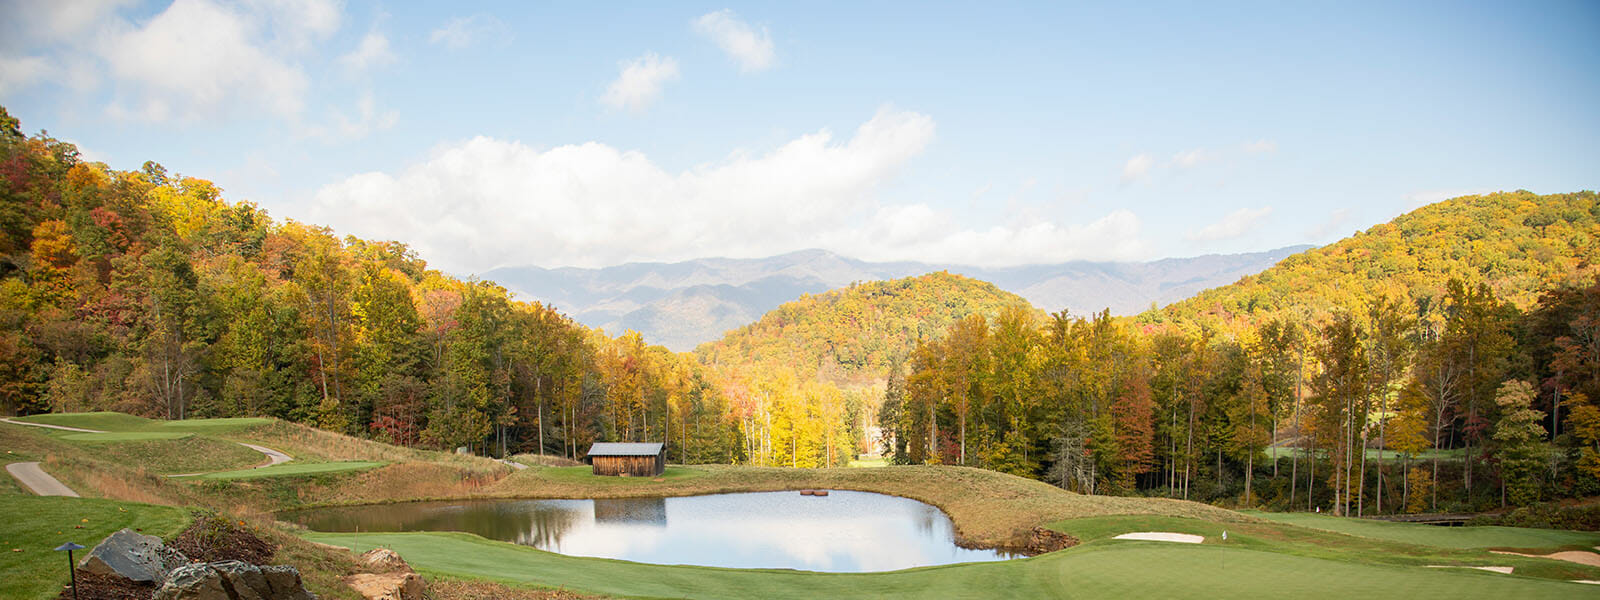 Mountain Community near Asheville NC | Balsam Mountain Preserve